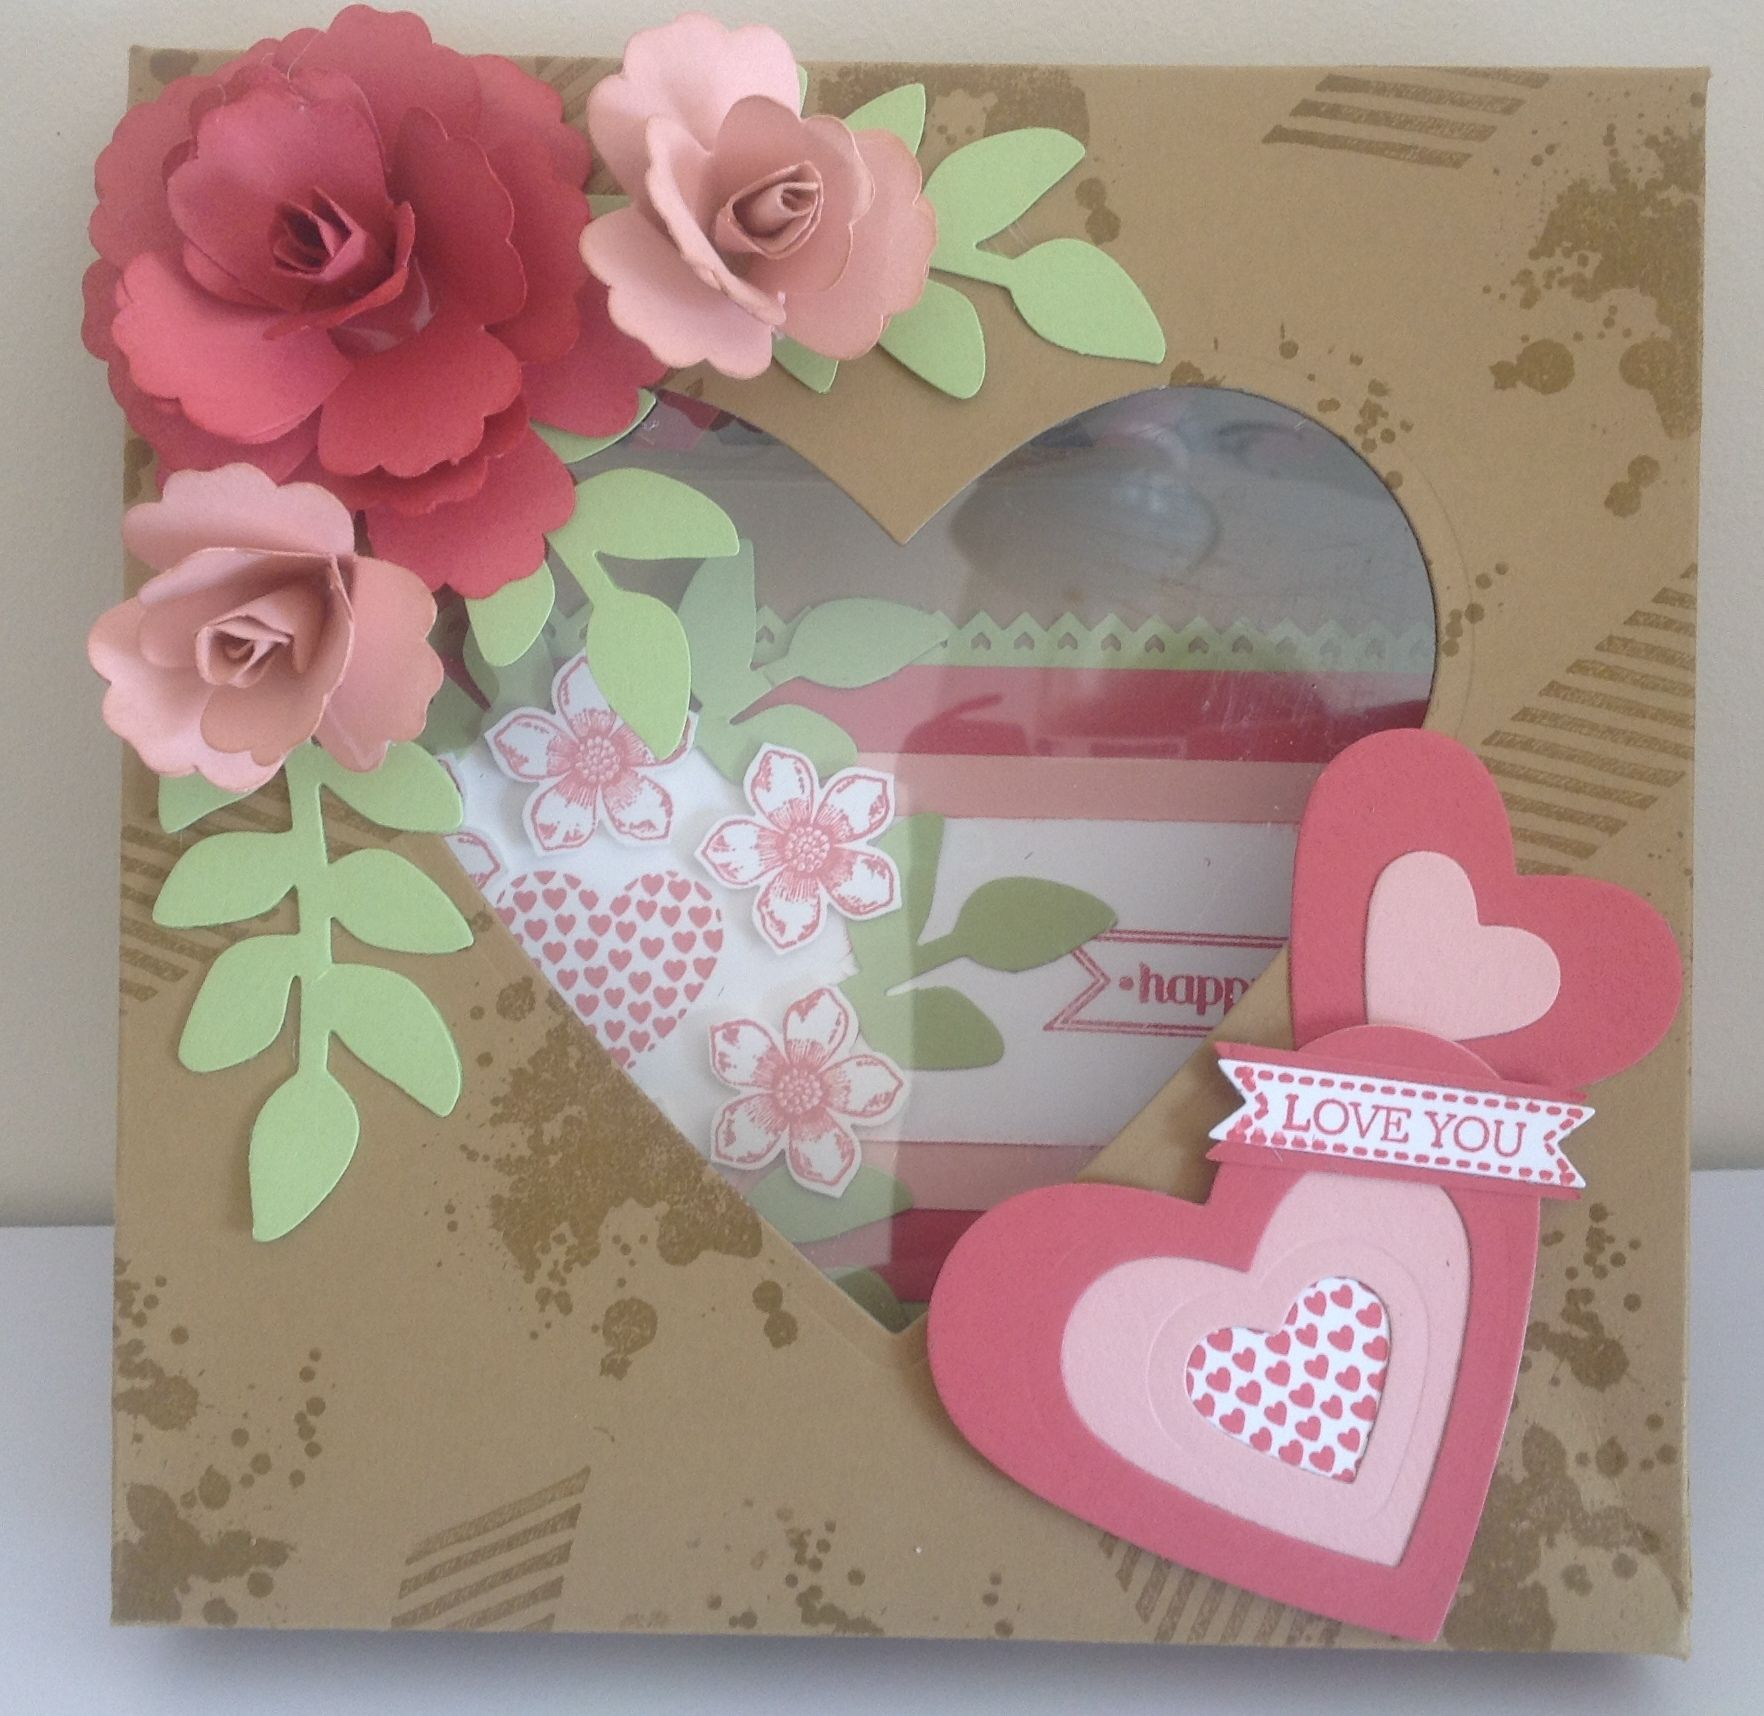 I used the heart die, blossom punch and the gorgeous grunge stampset